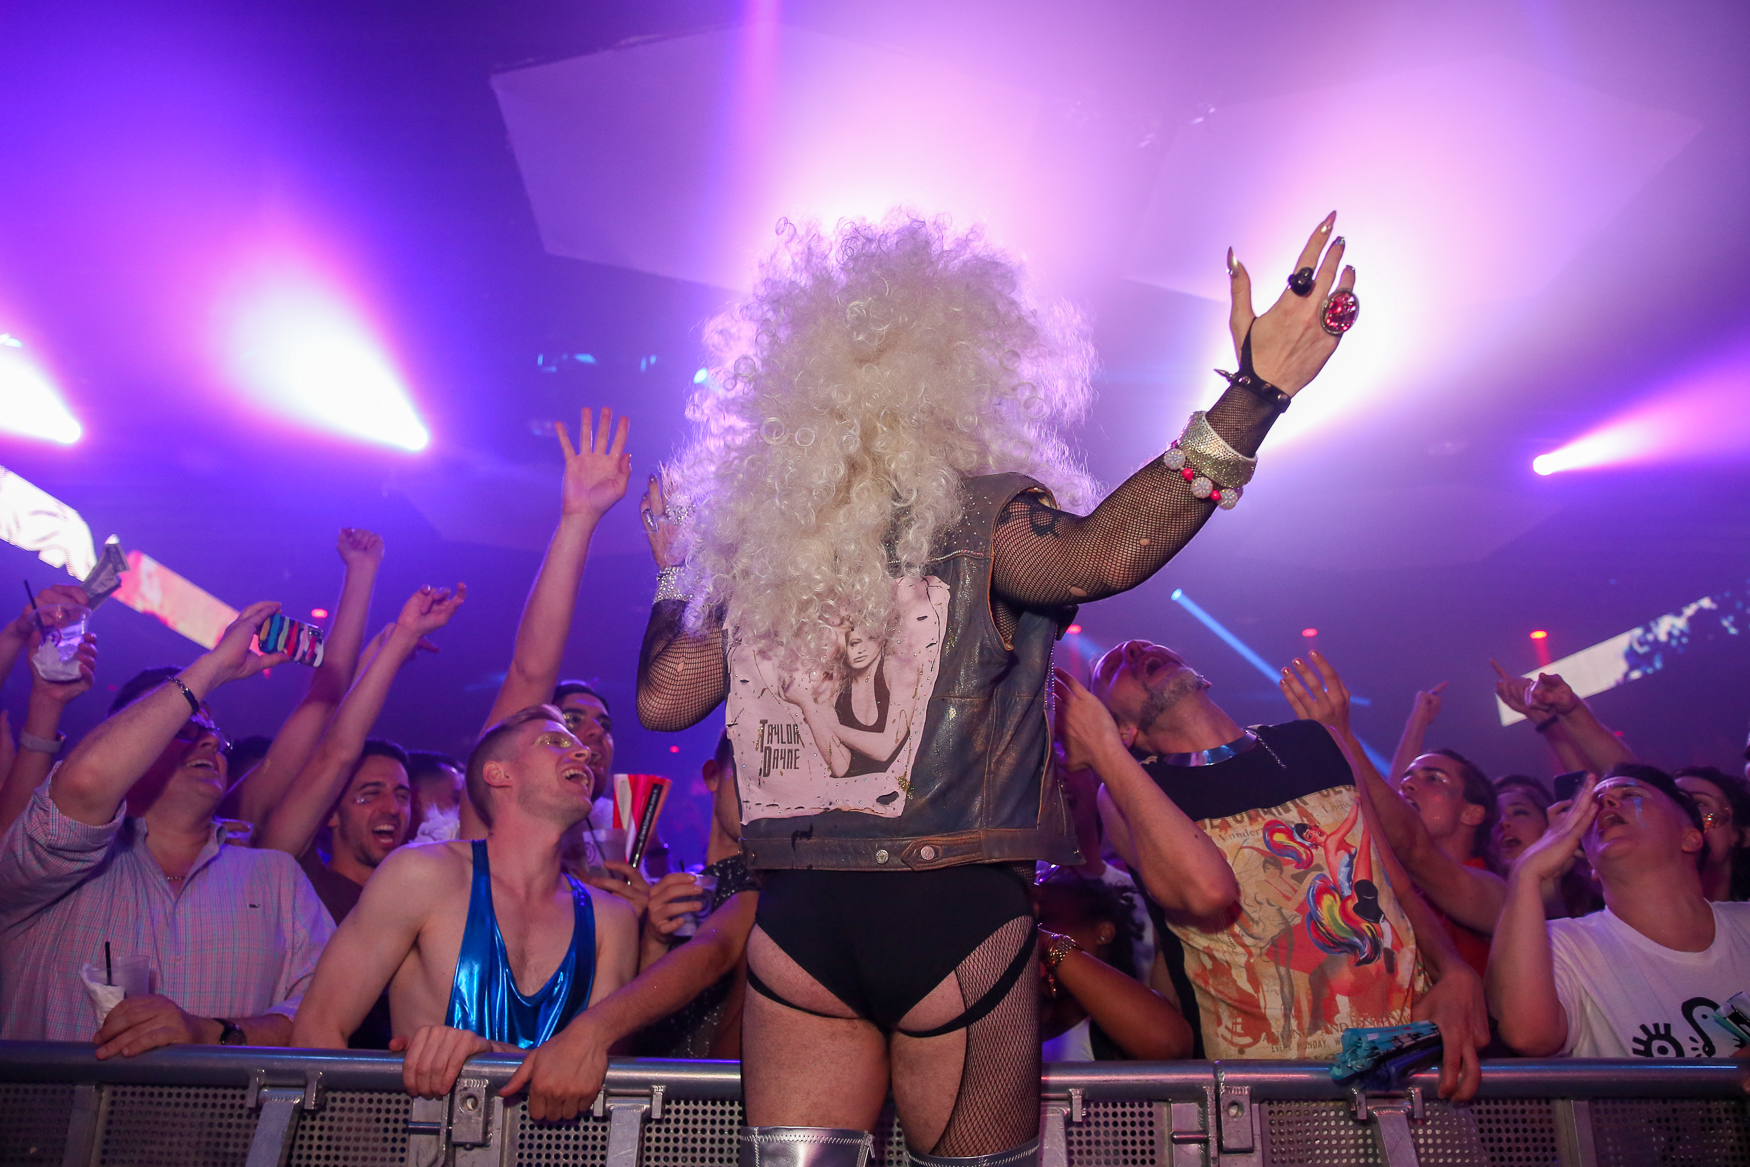 Pride weekend is here and the festivities started with an 'Earth,{ }Wind,{ }Glitter, &{ }Fire'-themed party at Echostage, put on by Capital Pride and Brightest Young Things. The evening featured drag performances, voguing, music and glitter stations. (Amanda Andrade-Rhoades/DC Refined)